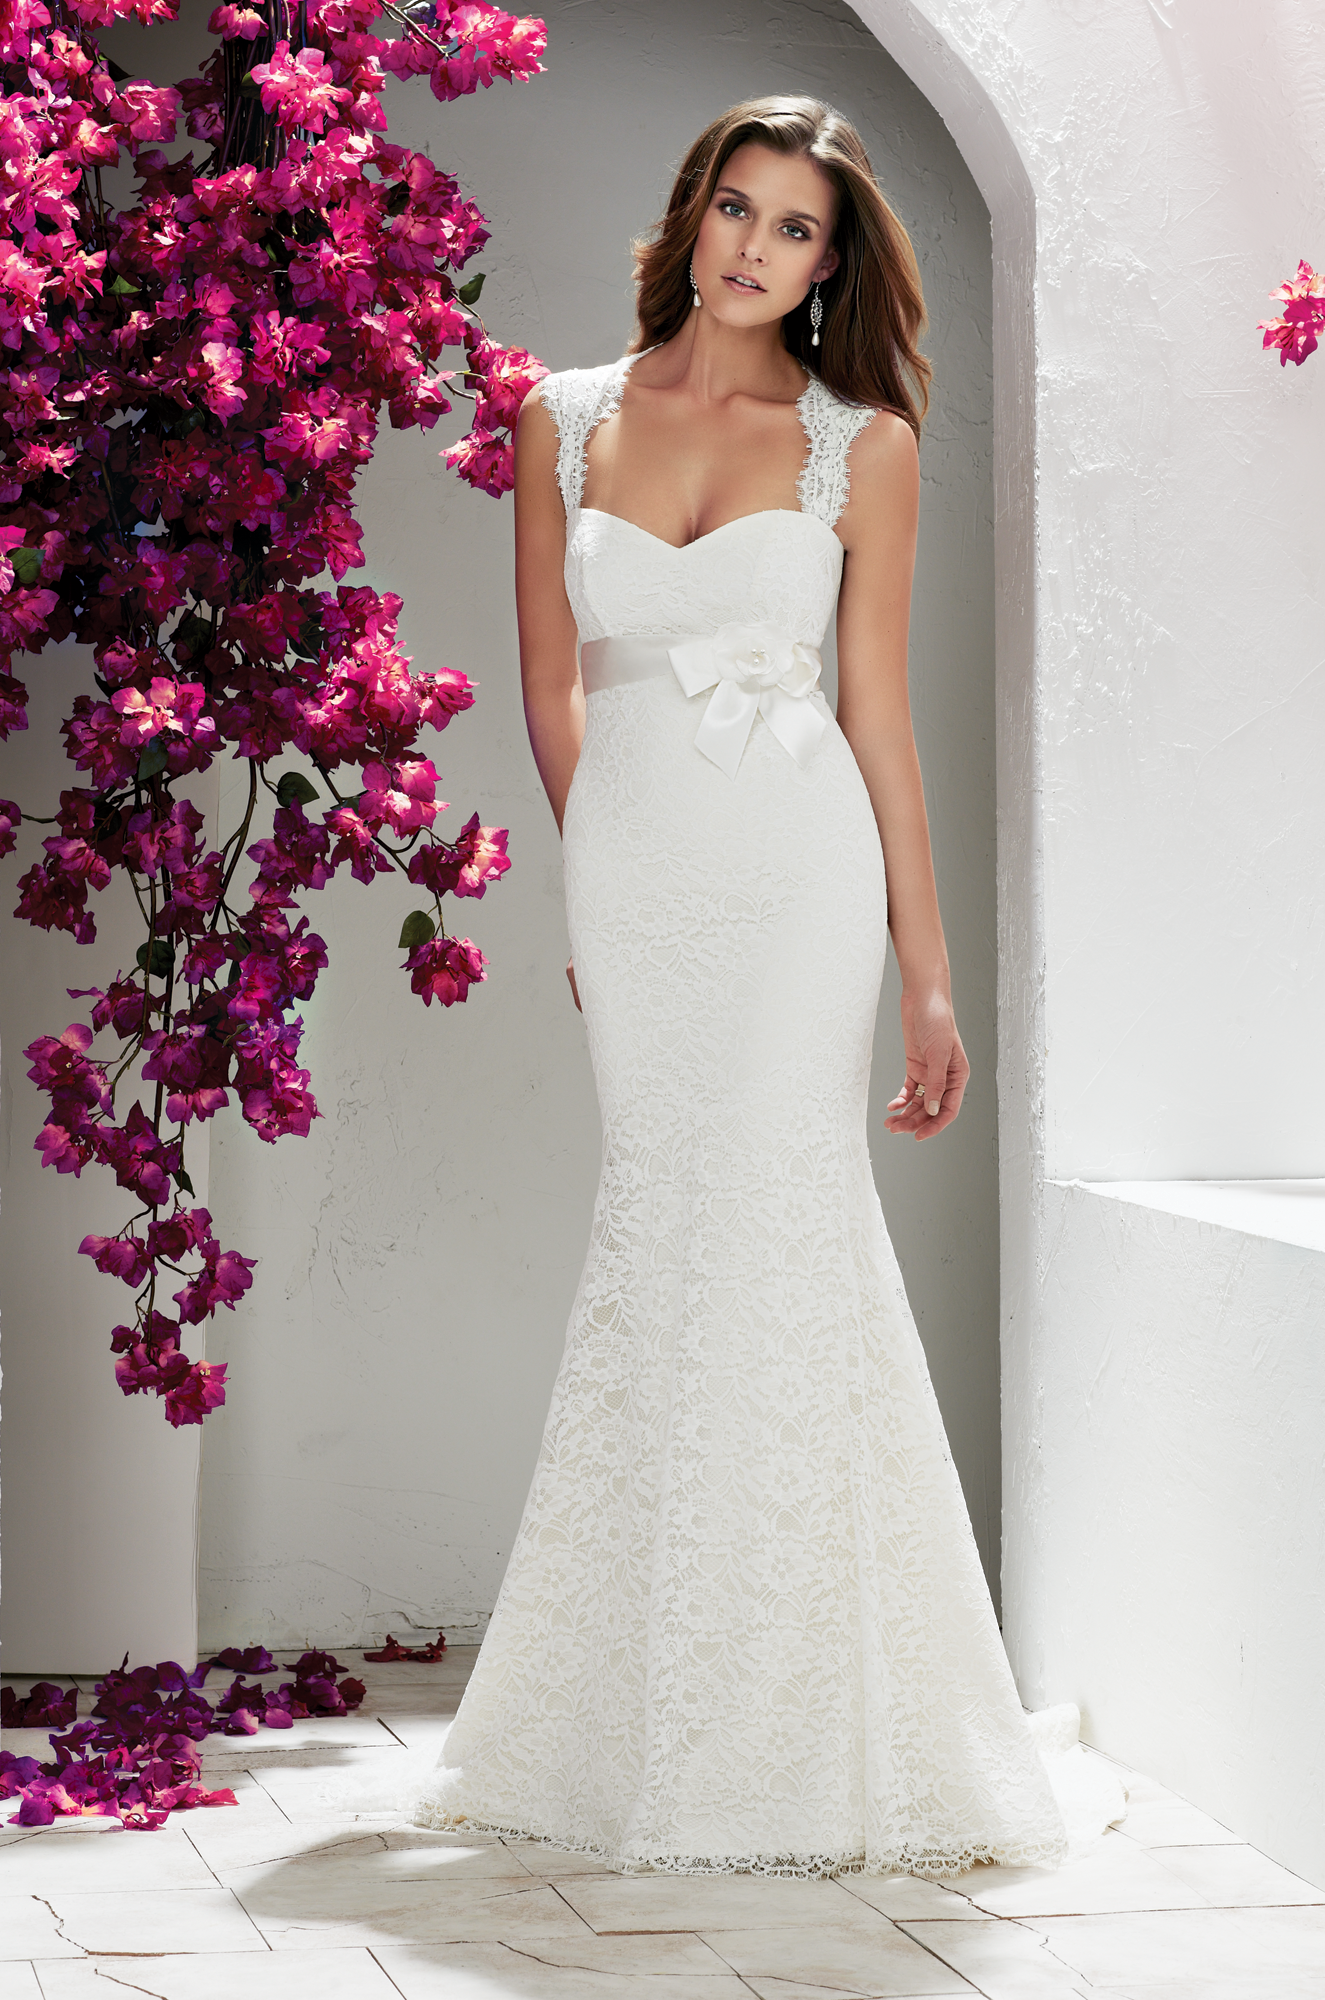 Lace wedding dress designers    Mikaella Bridal they have this designer at the White Magnolia